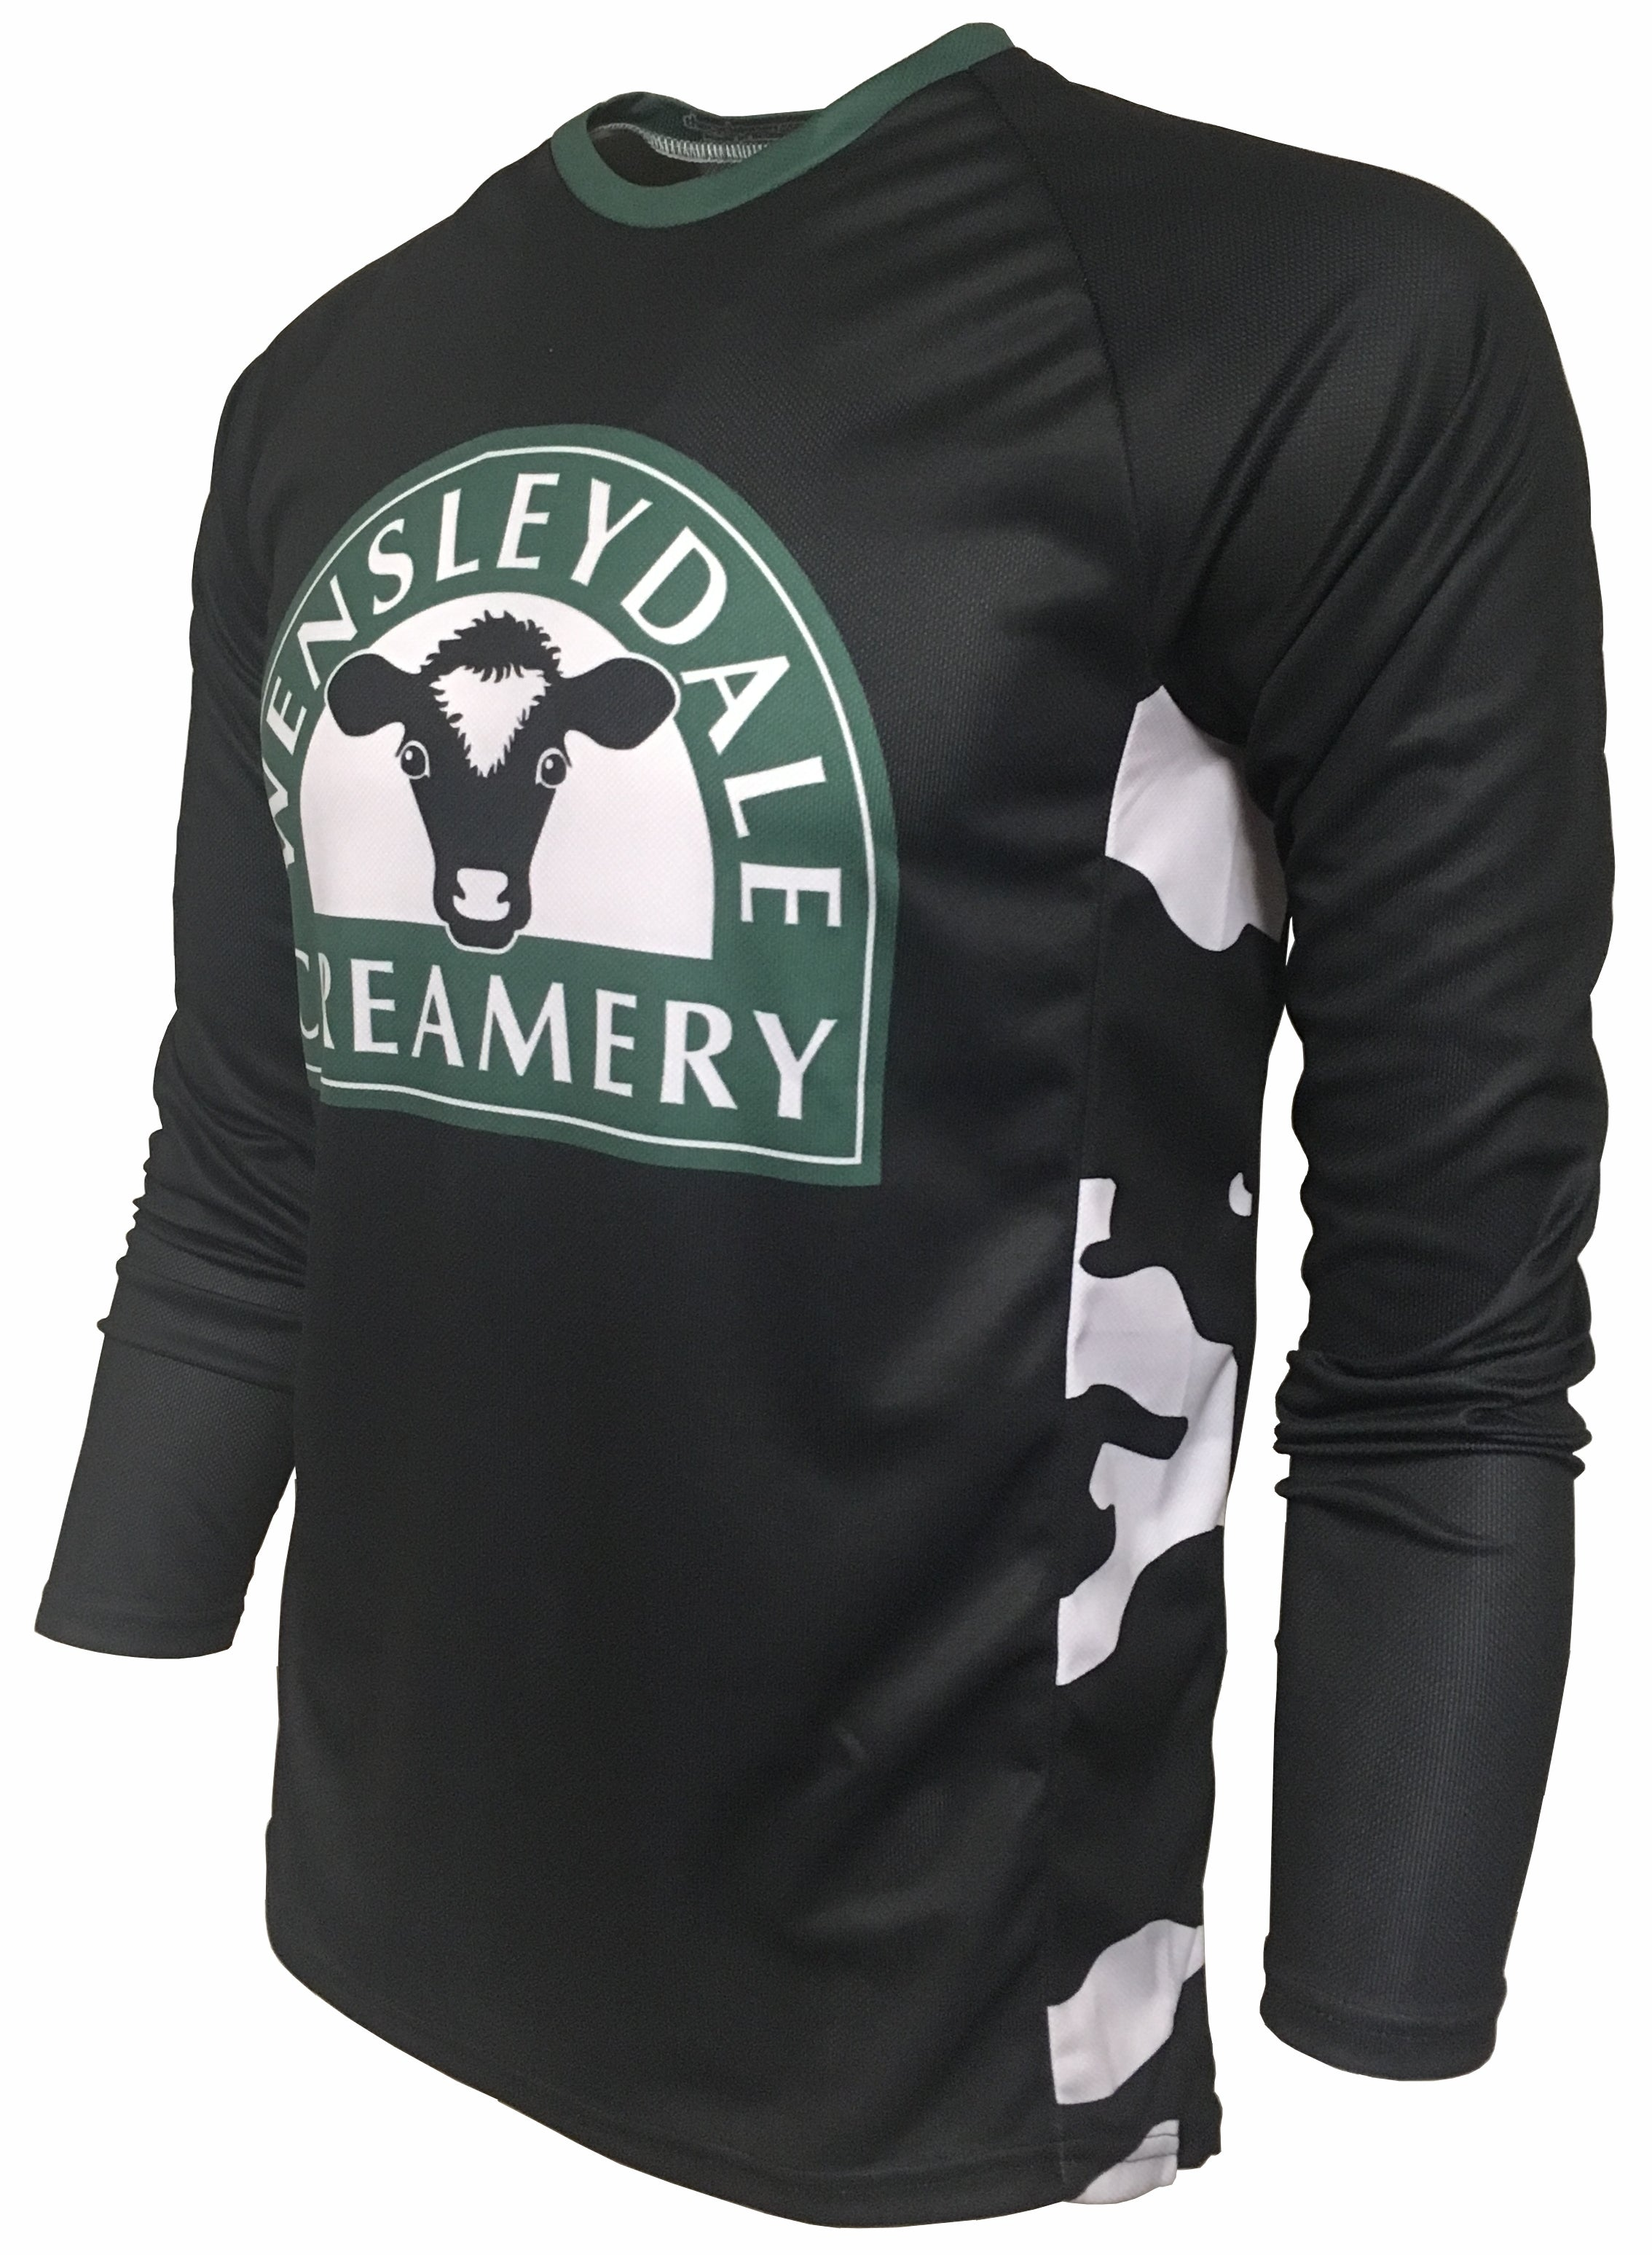 Wensleydale Creamery Cow Print Enduro Jersey Front